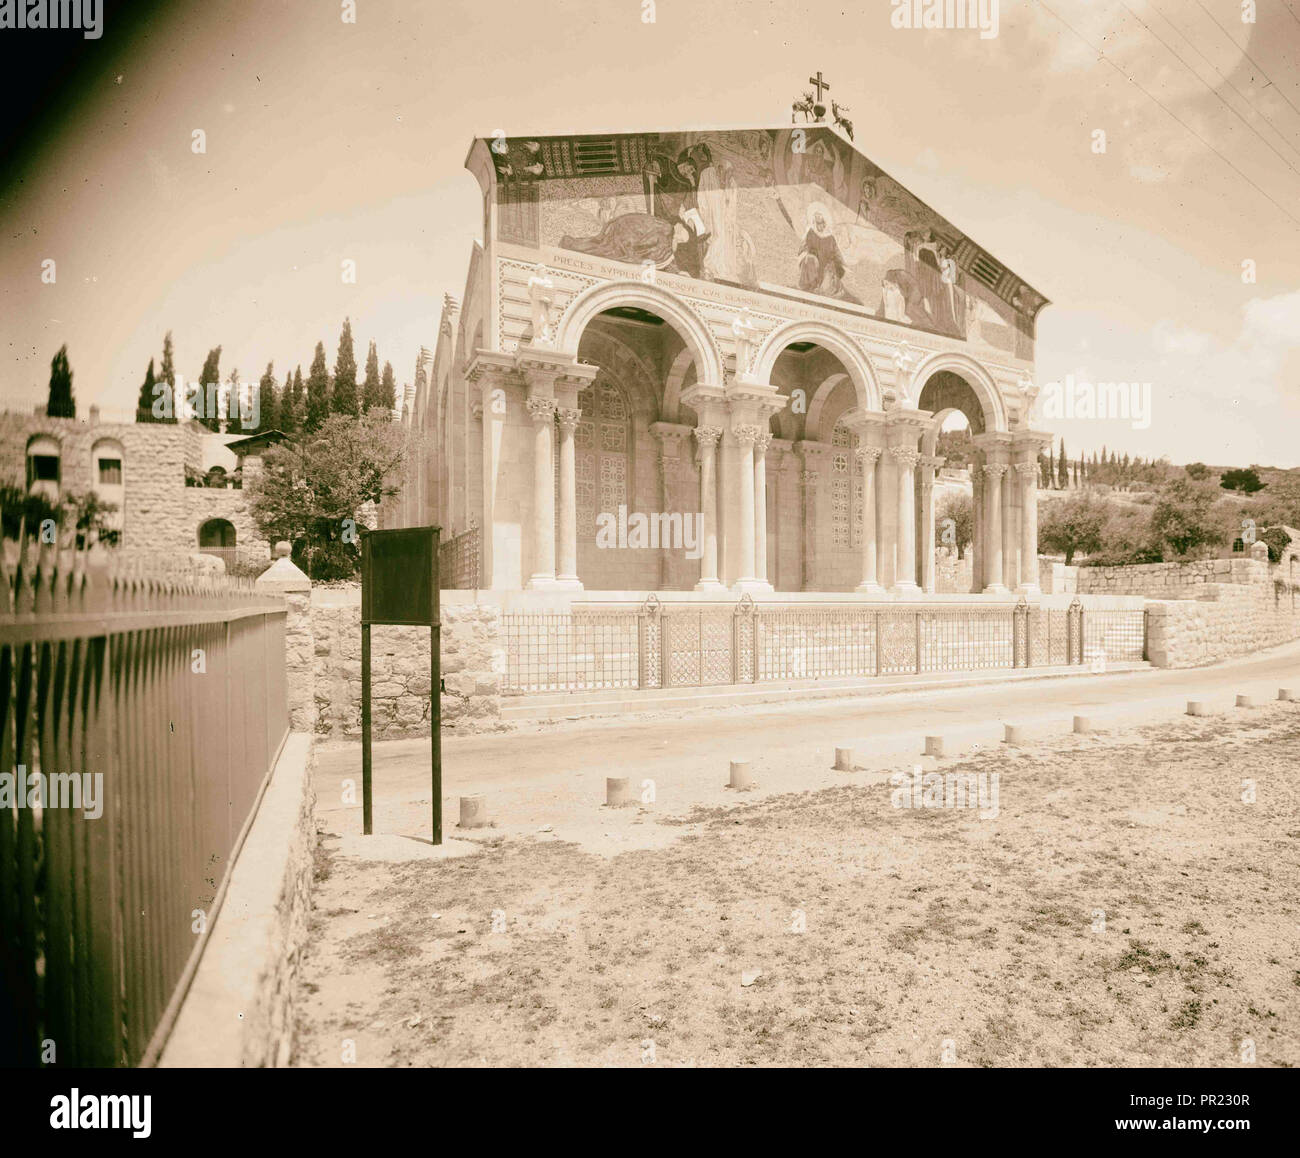 Byzantine style fa ade of the Gethsemane Basilica, Church of All Nations or Church of the Agony 1934, Jerusalem, Israel - Stock Image